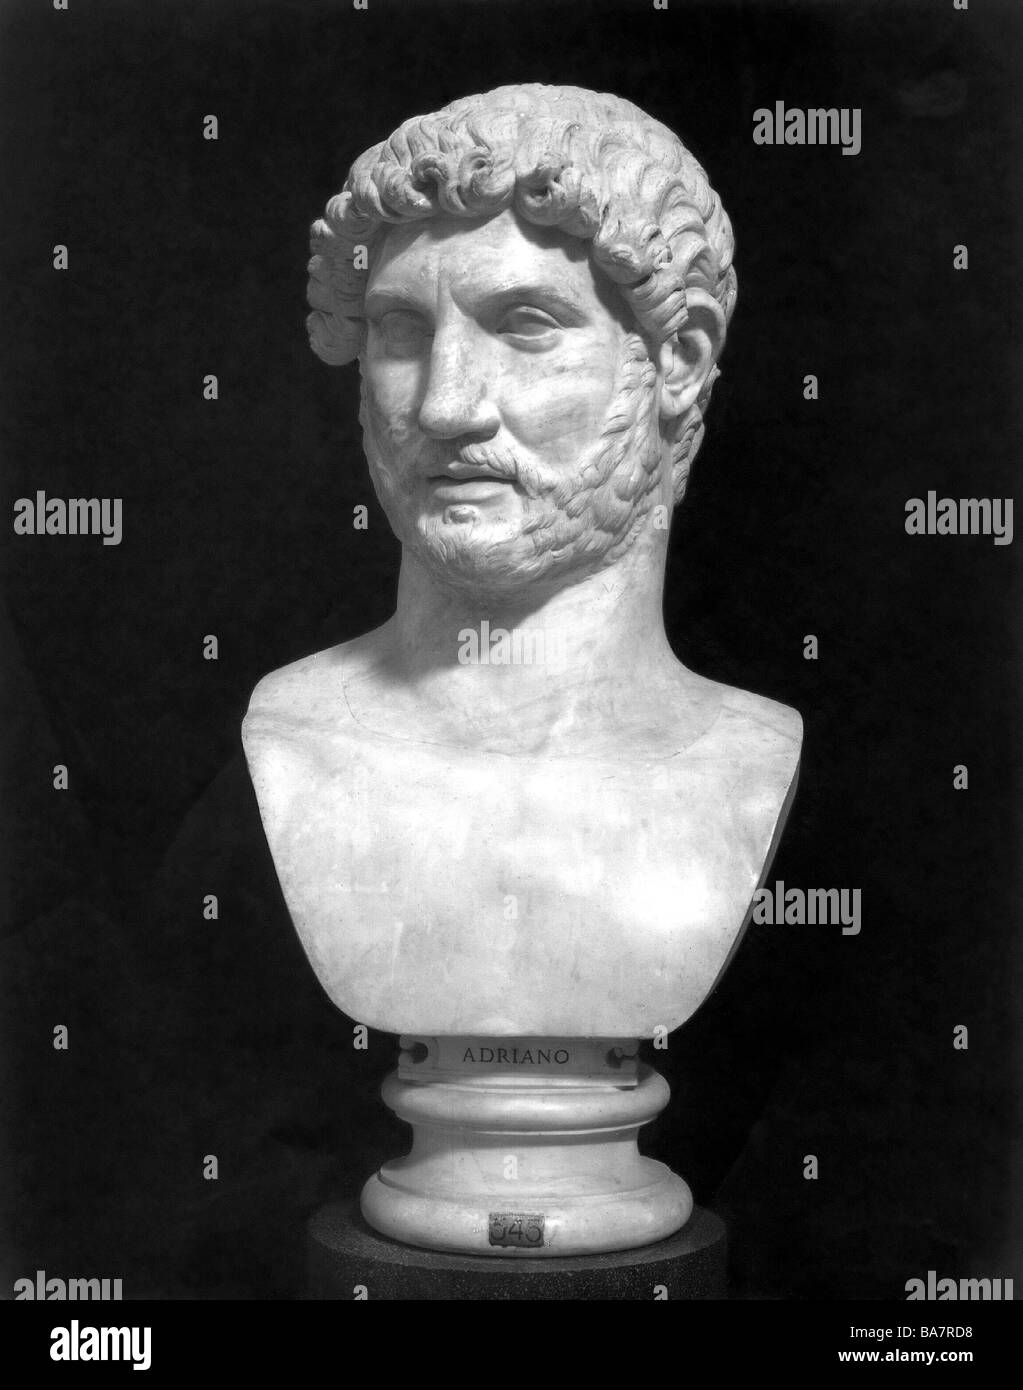 a biography of aelius hadrianus the roman emperor Publius aelius hadrianus (who lived from 76 ad to 138 ad) was born to a senator of the roman senate his family settled in spain, which was then part of the empire, and he spent lots of time there.